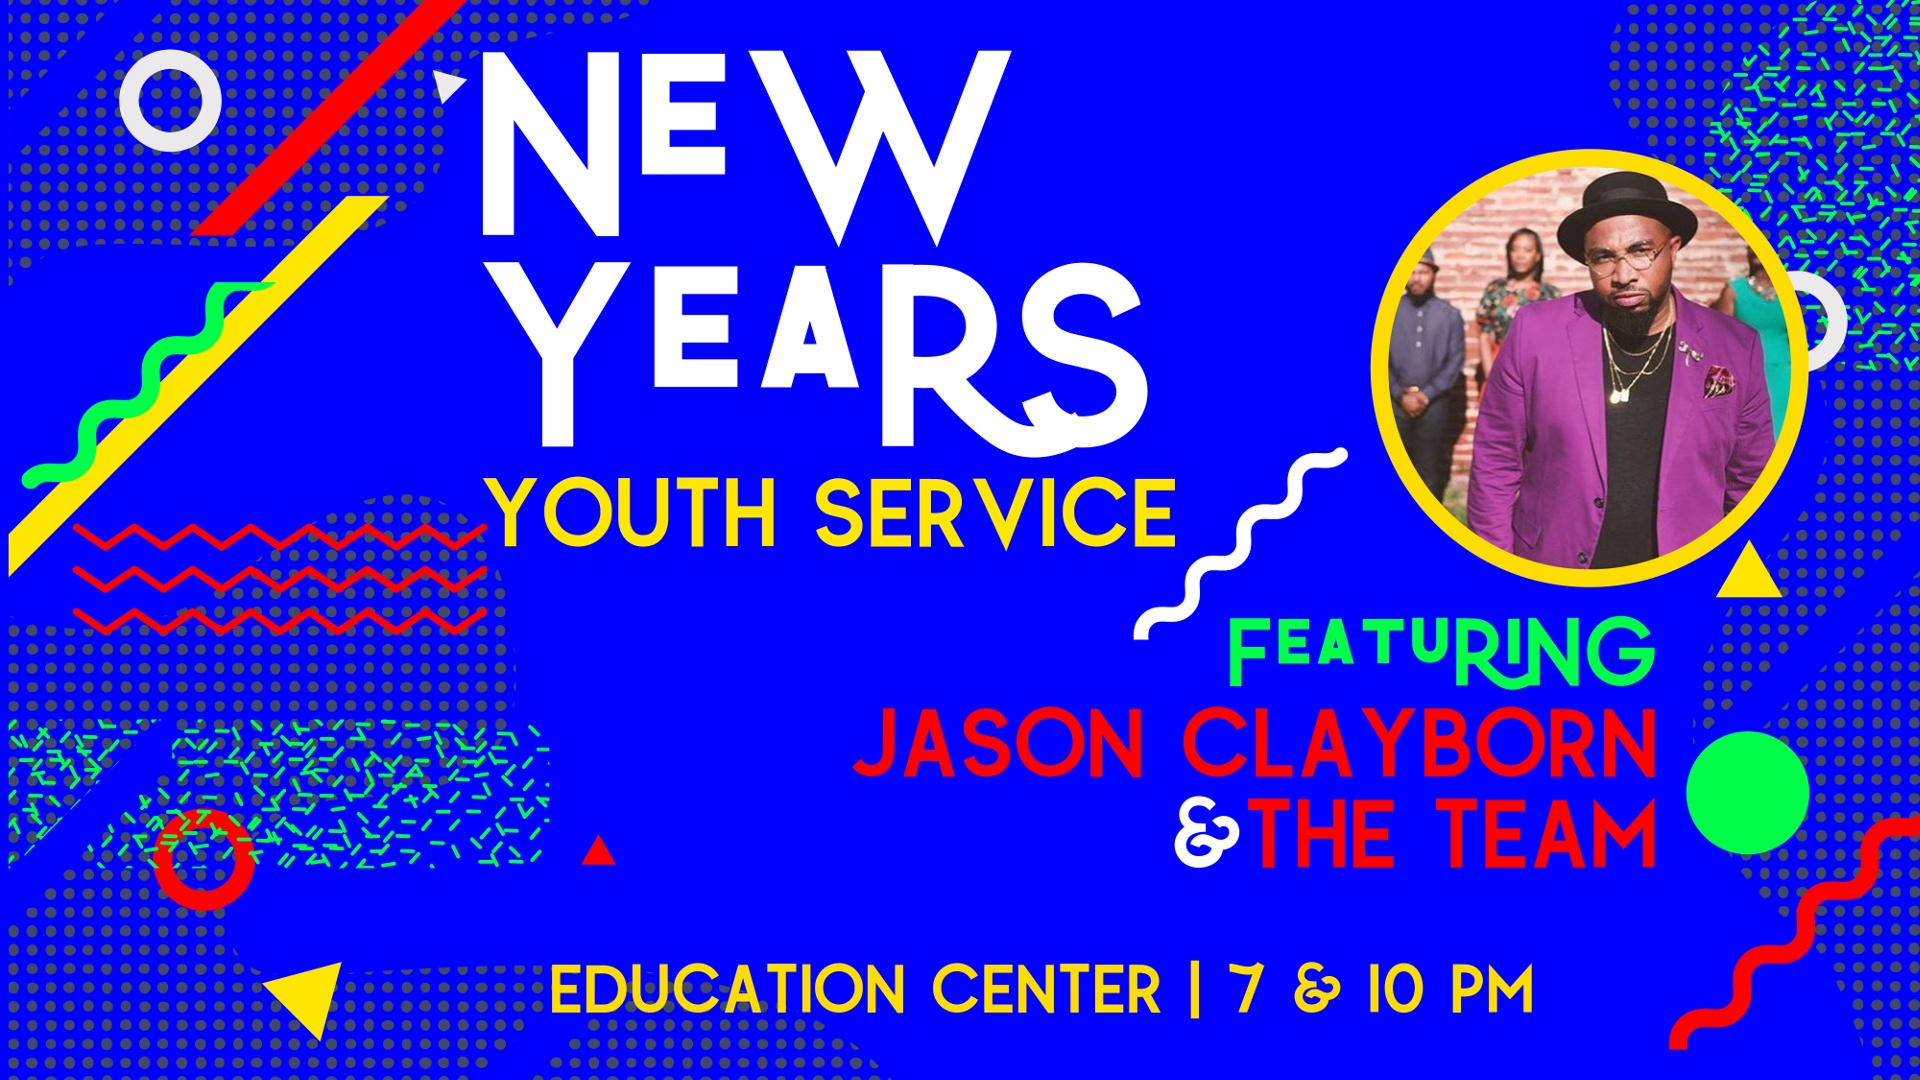 New Years Youth Service